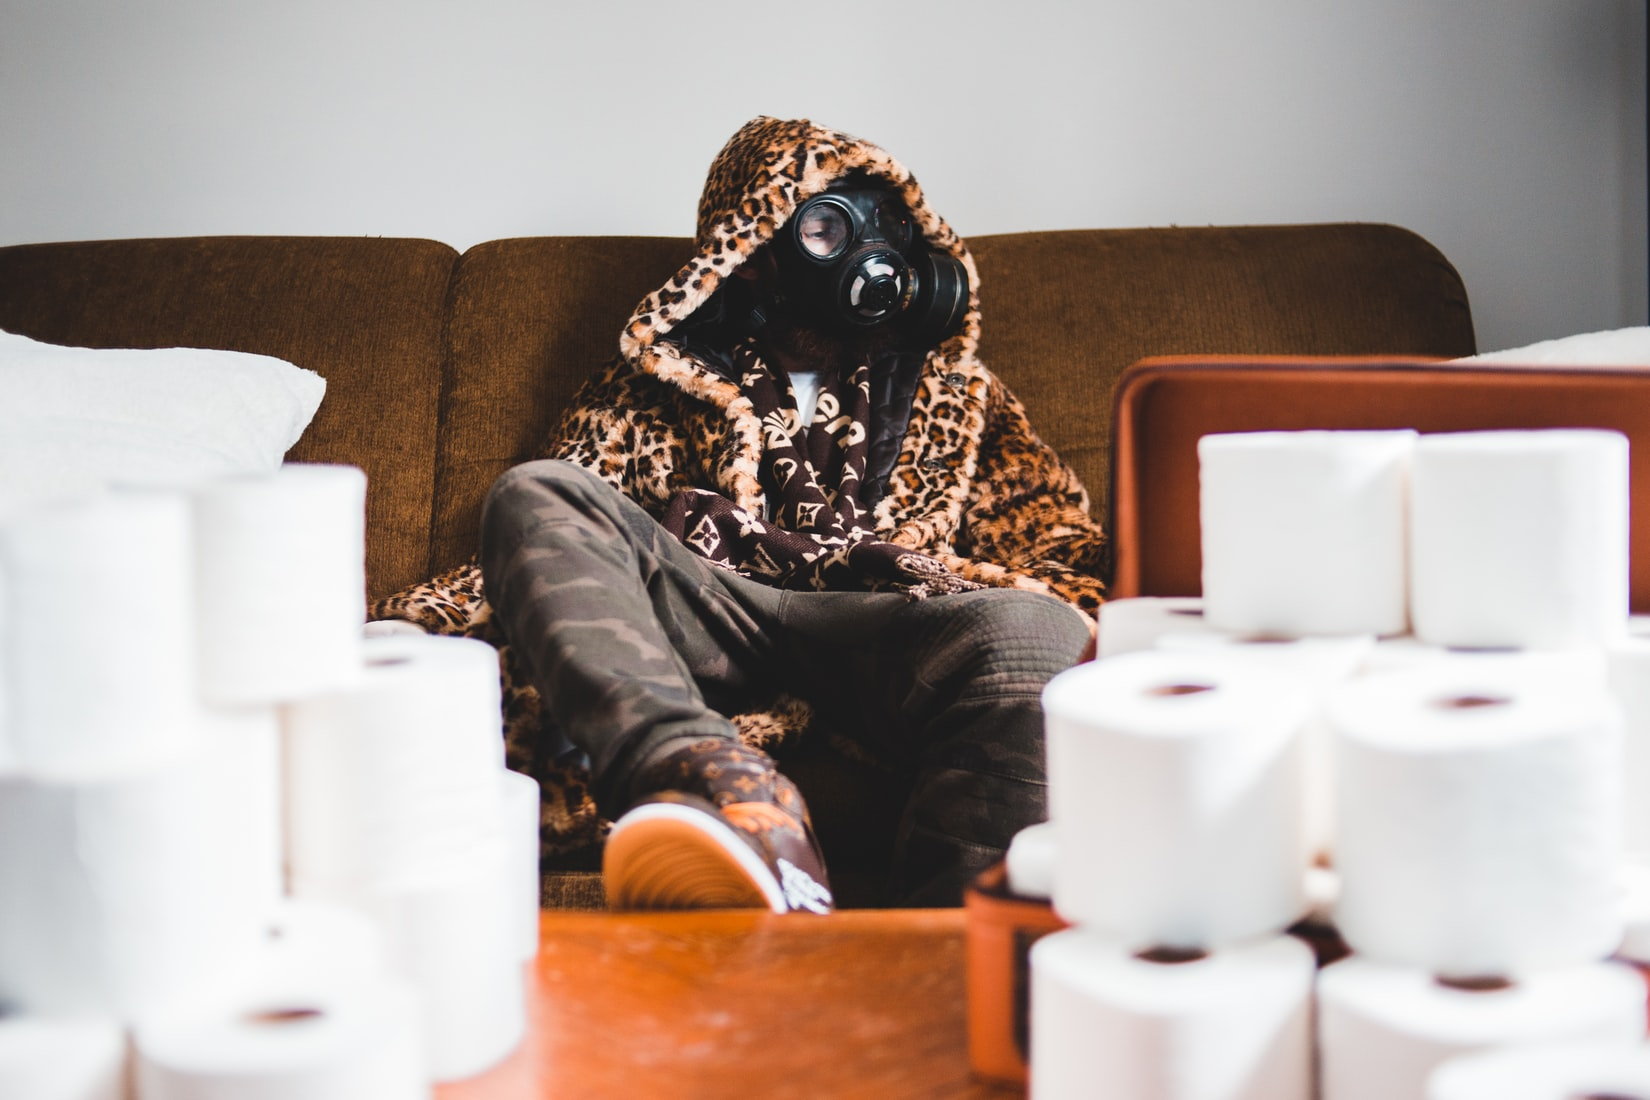 Person wearing cheetah coat with gas mask on sitting on couch with toilet paper on table